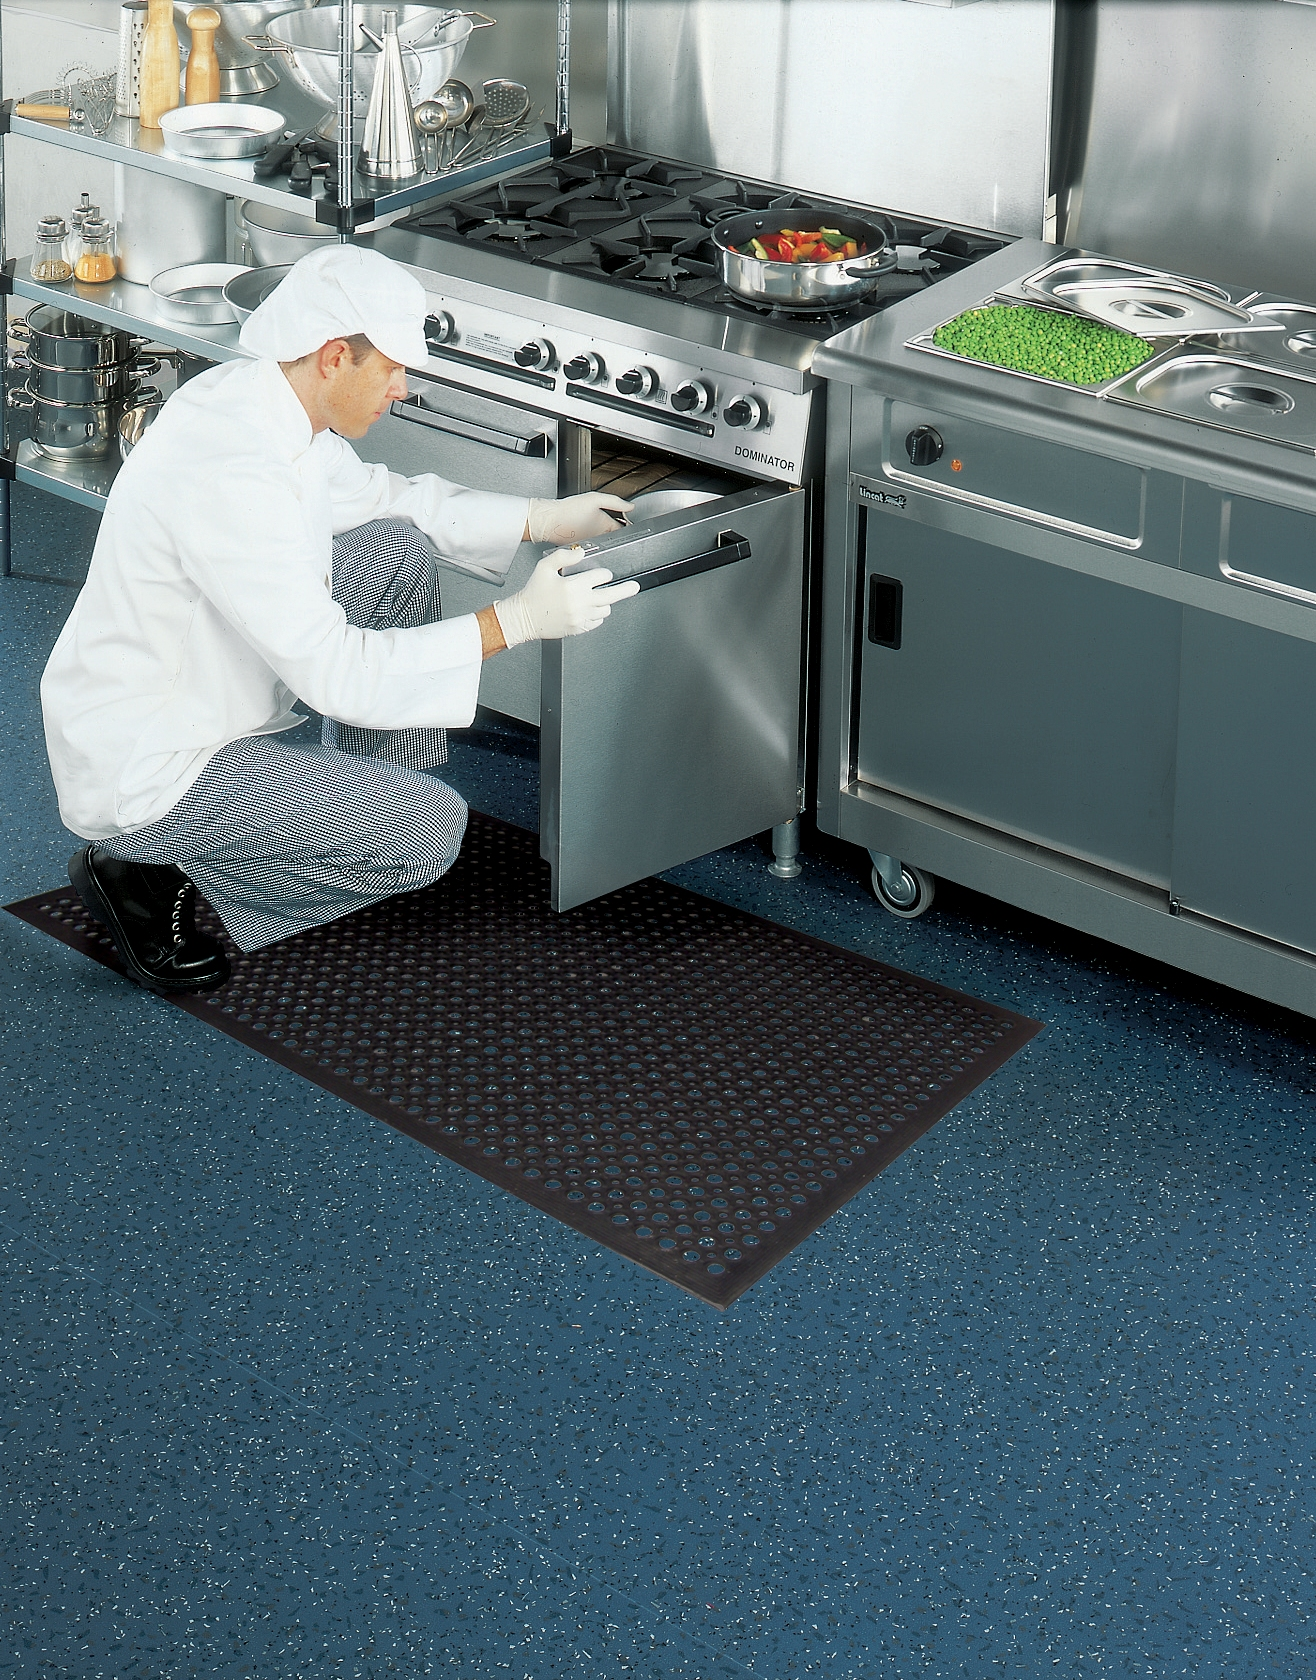 commercial kitchen floor coverings sink single bowl safety cushion mat for wet and dry areas mattek